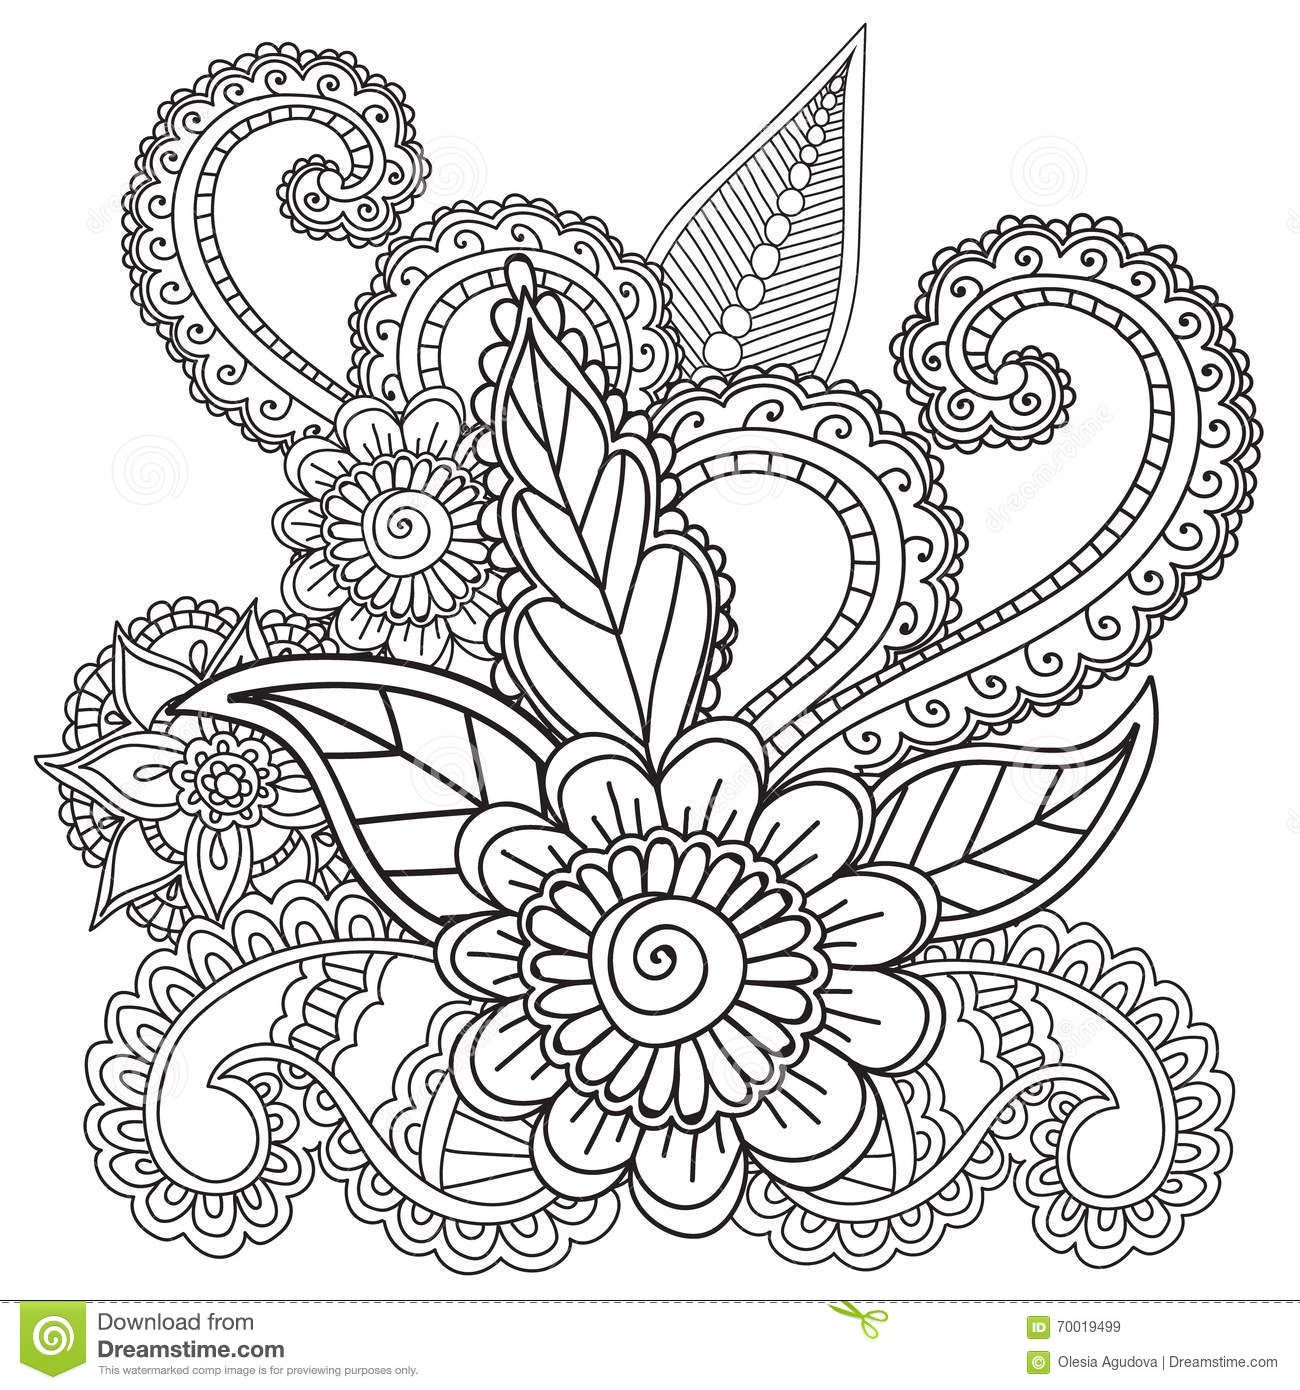 Coloring pages adults henna mehndi doodles abstract floral for Henna coloring pages